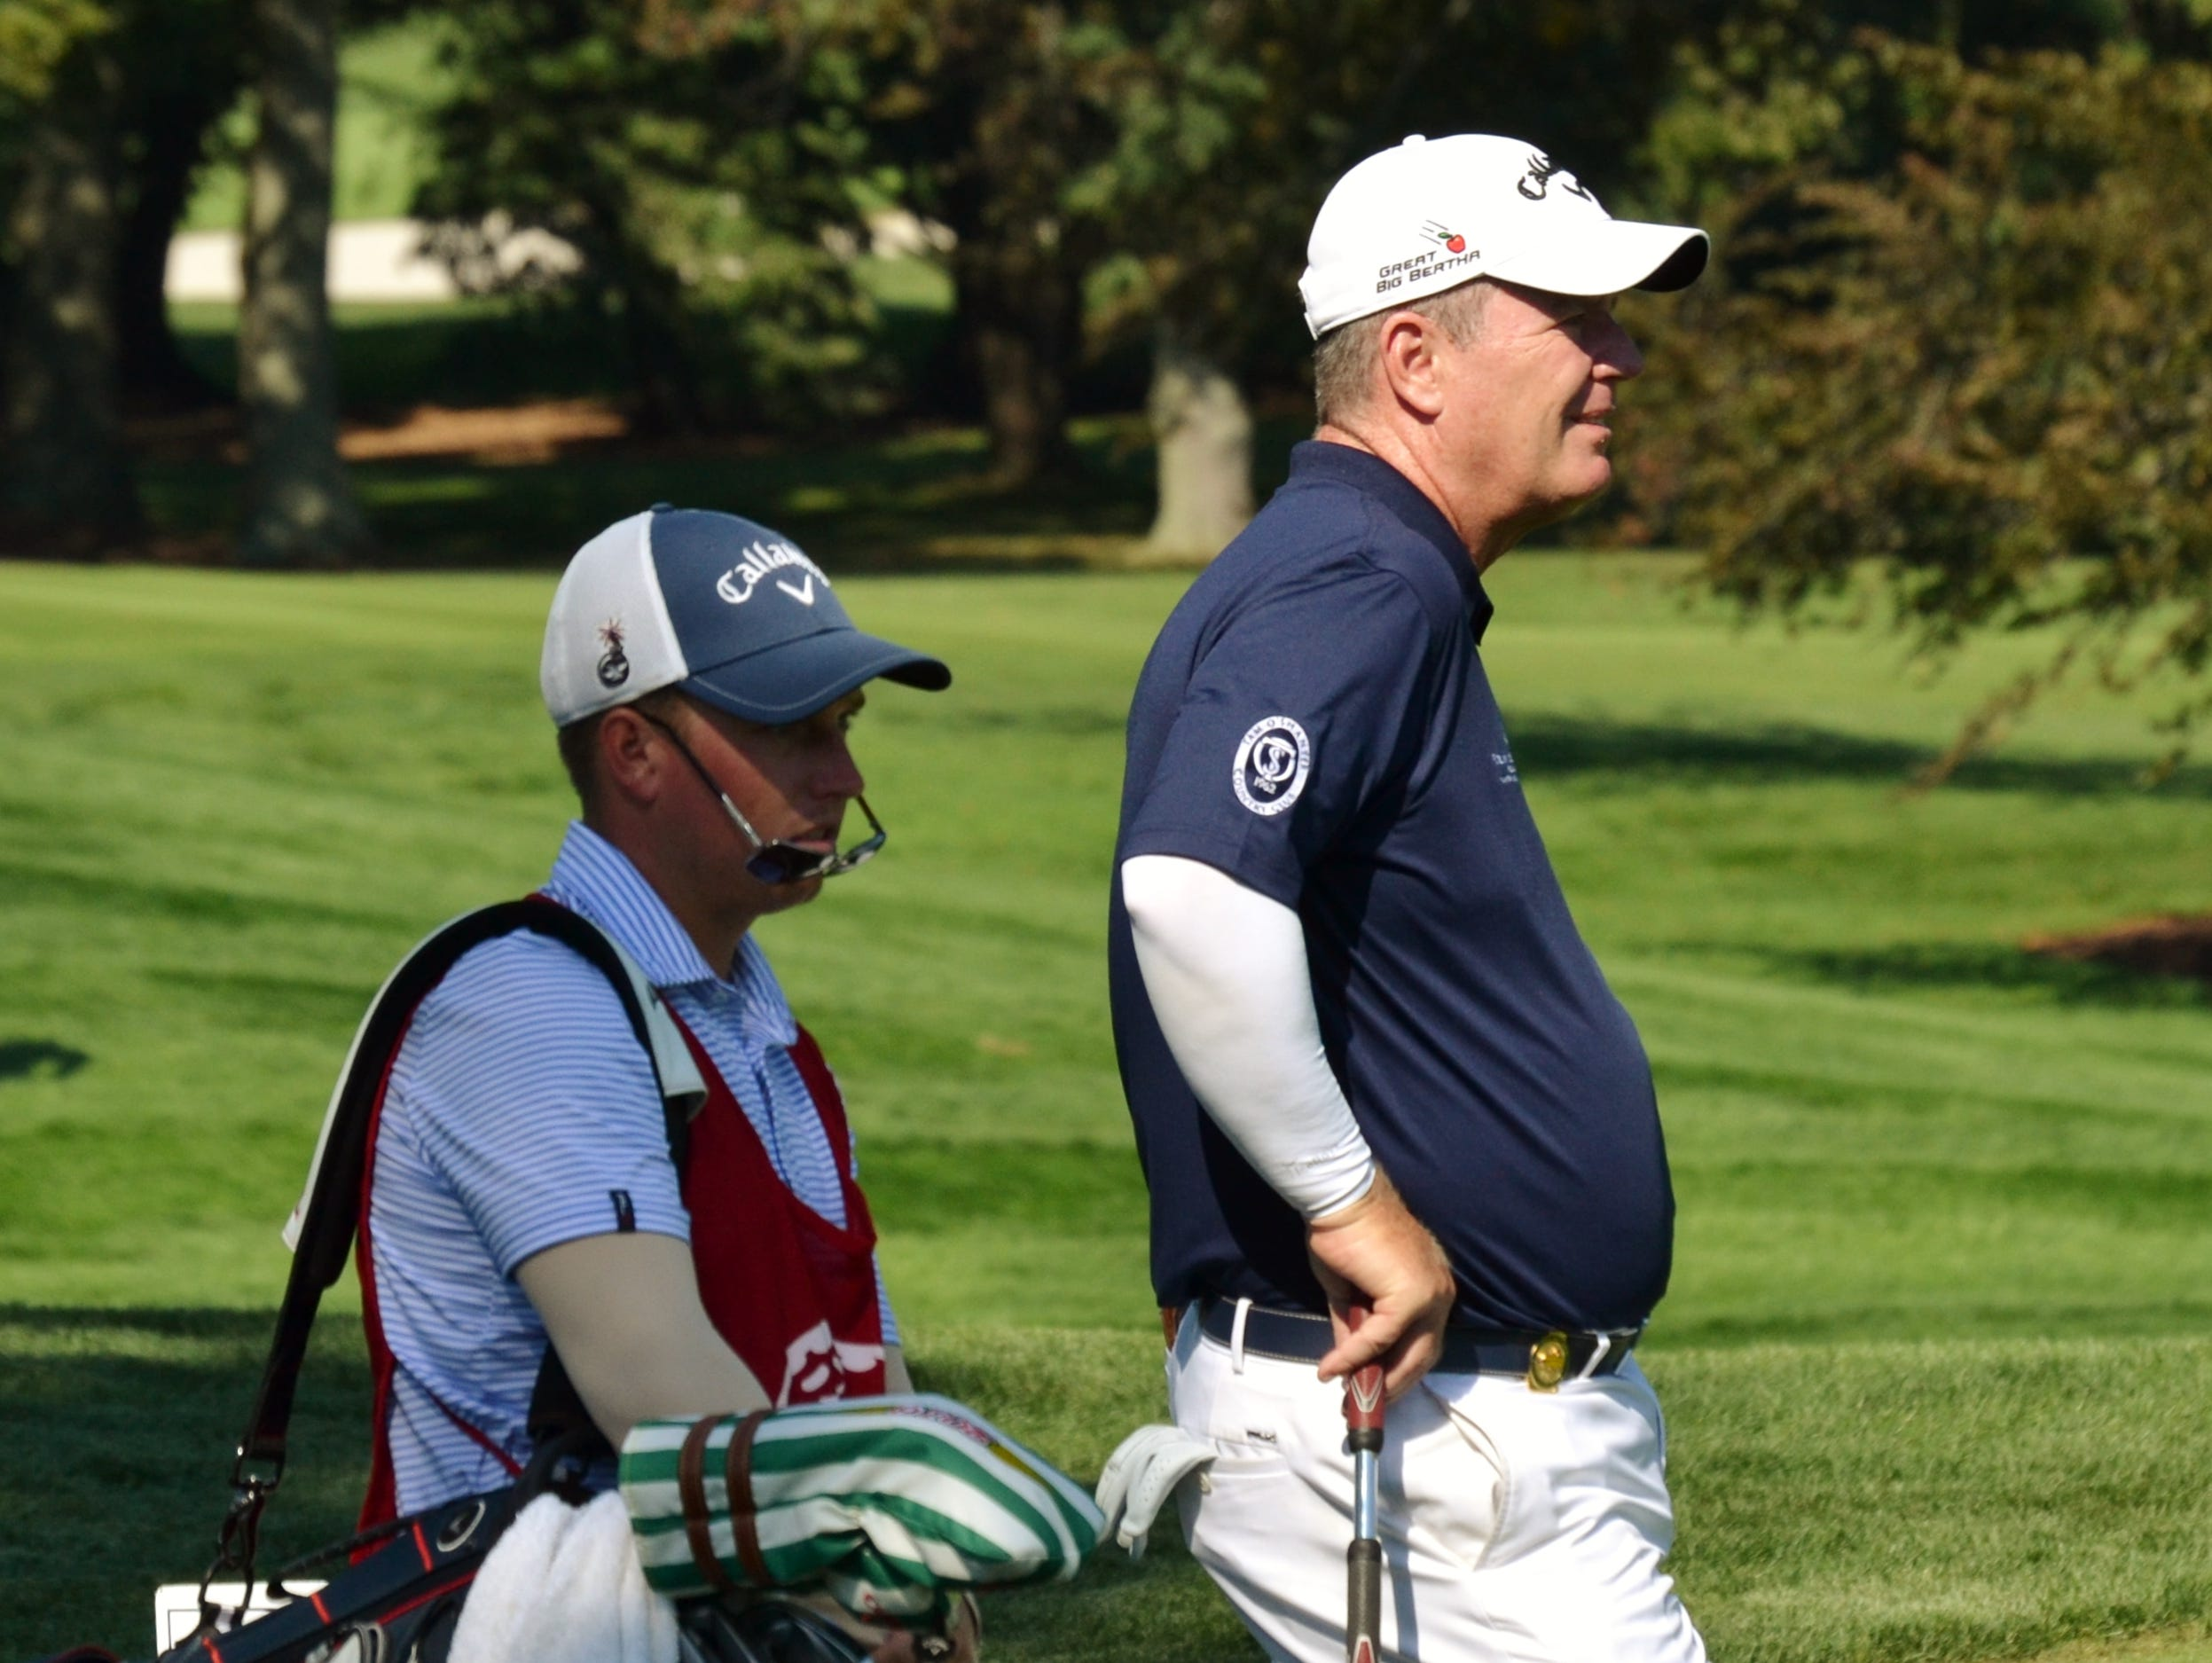 Met Open champion Mark Brown waits to tee off Wednesday at the 17th hole at Glen Oaks with caddie Josh Rackley. The Tam O'Shanter head pro also won the Met Open in 1999 and 2013.